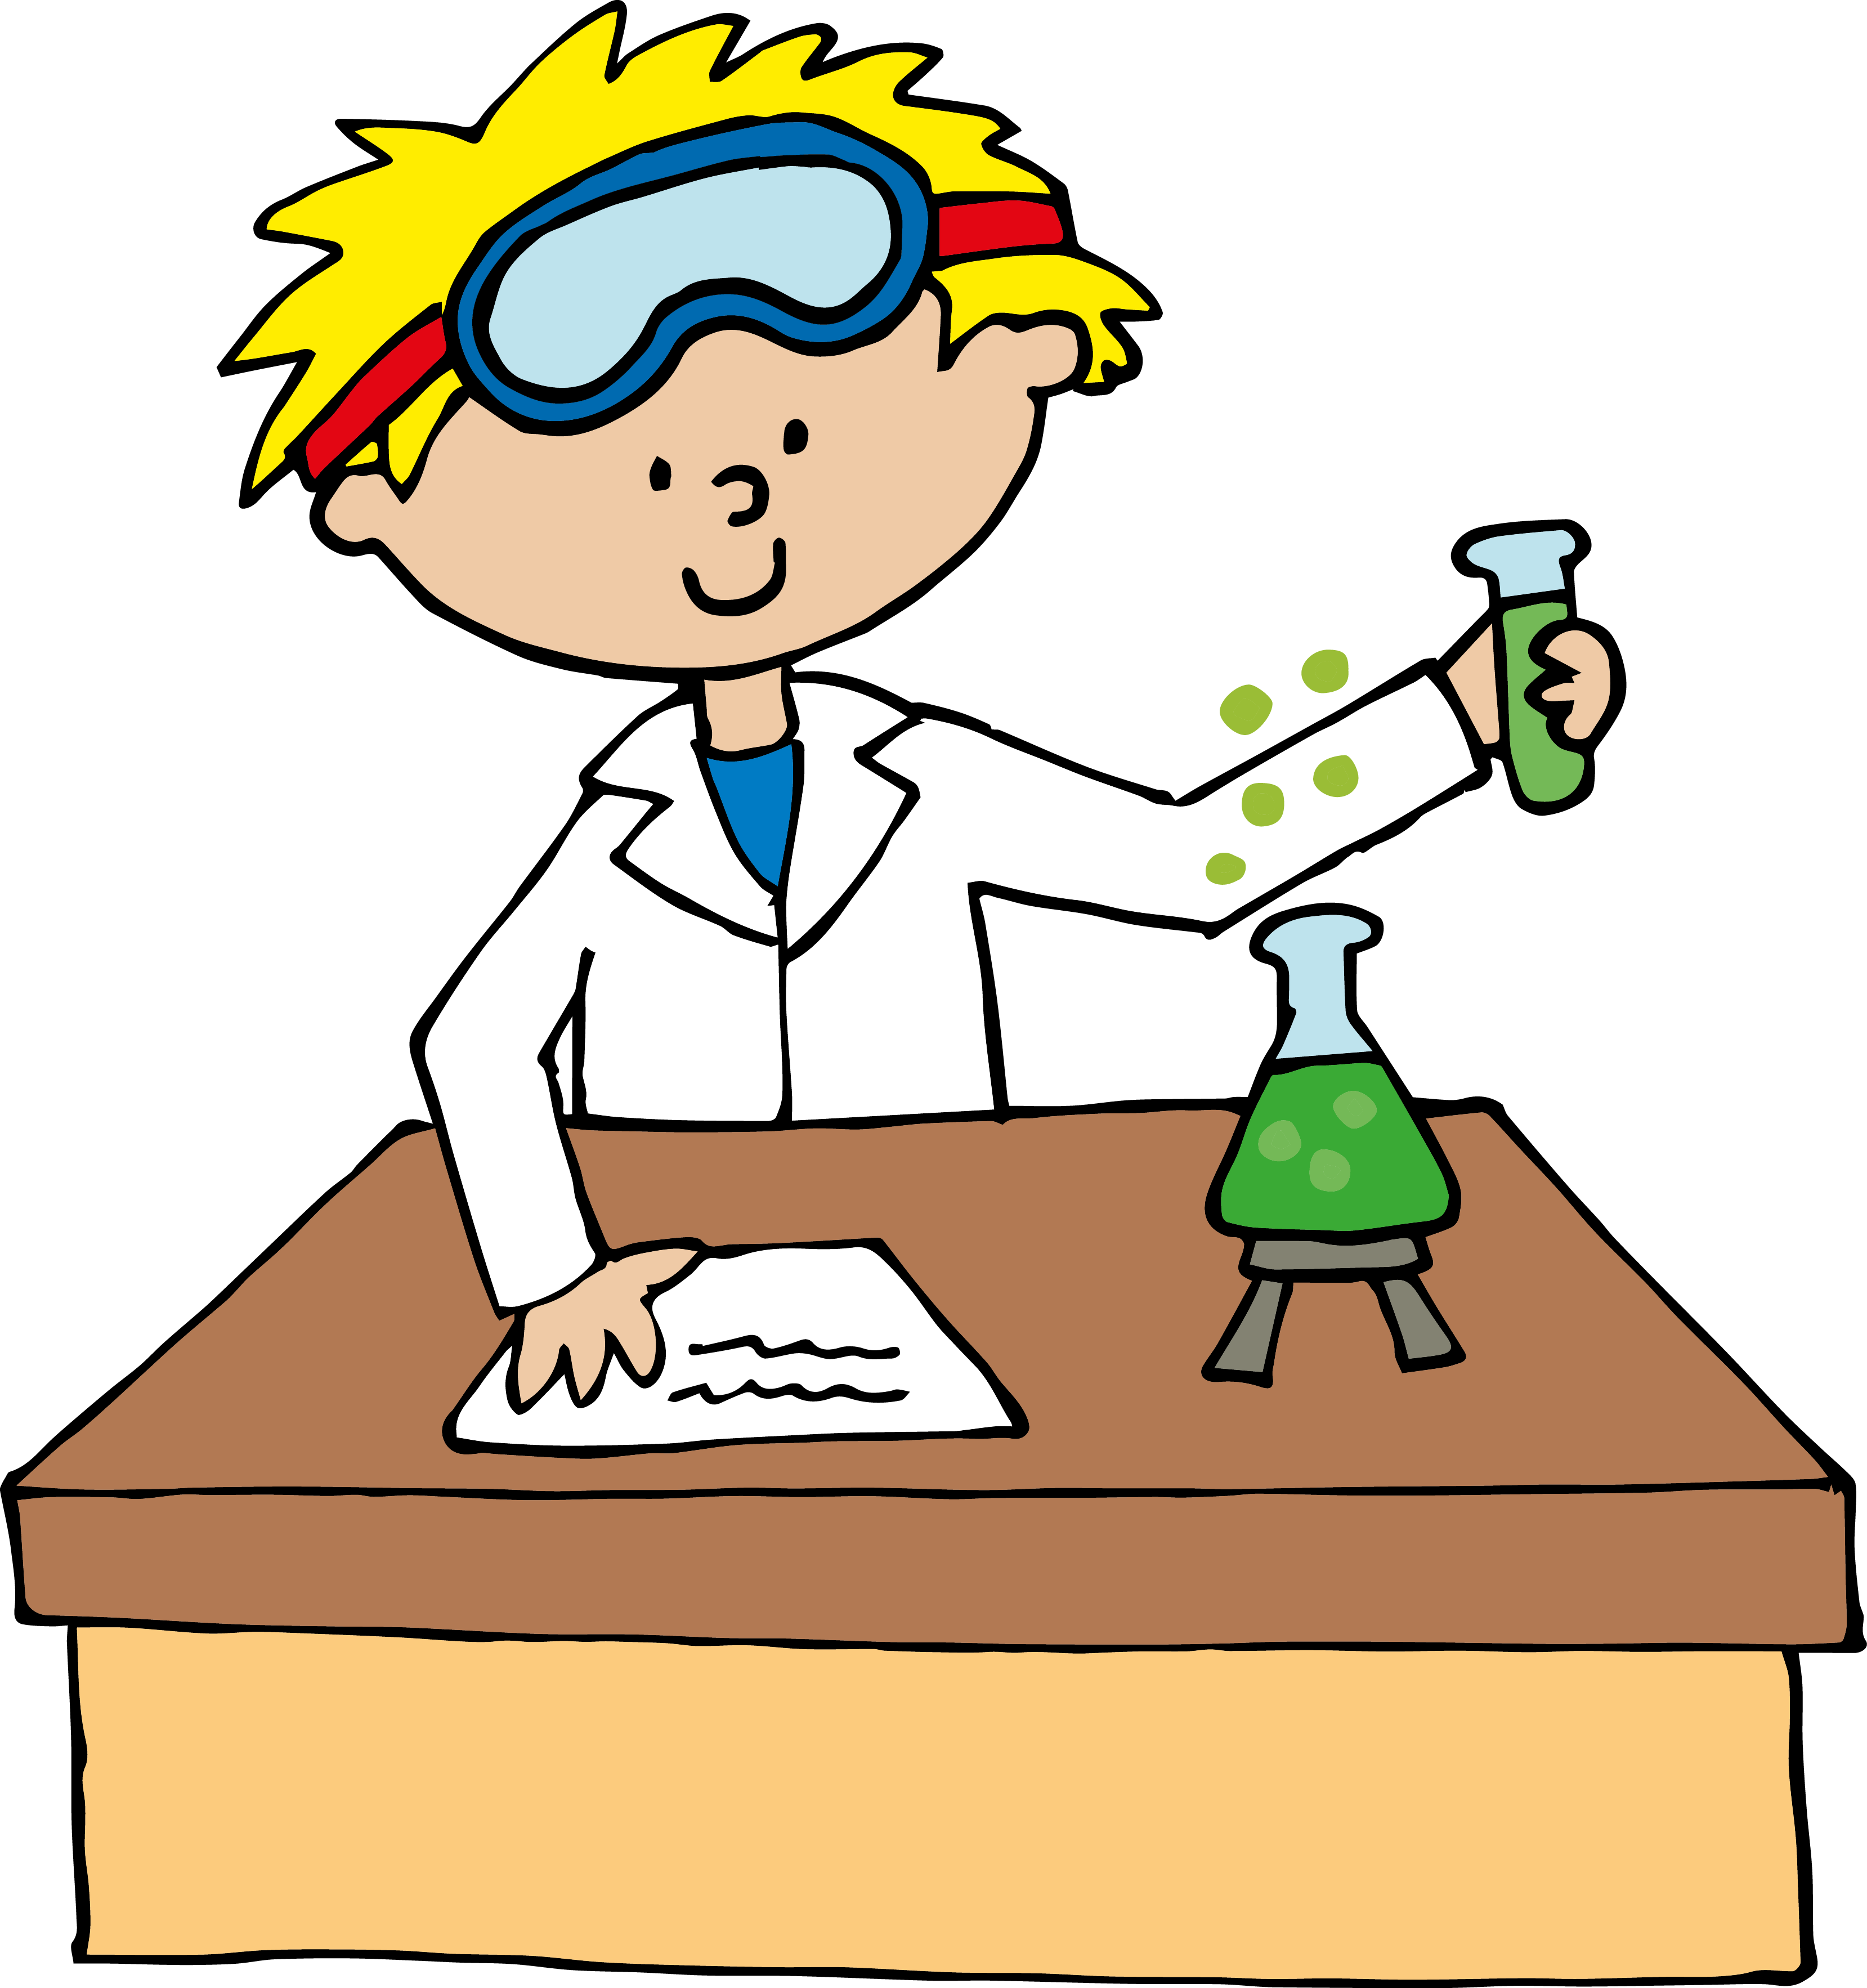 Free Science Cliparts, Download Free Clip Art, Free Clip Art